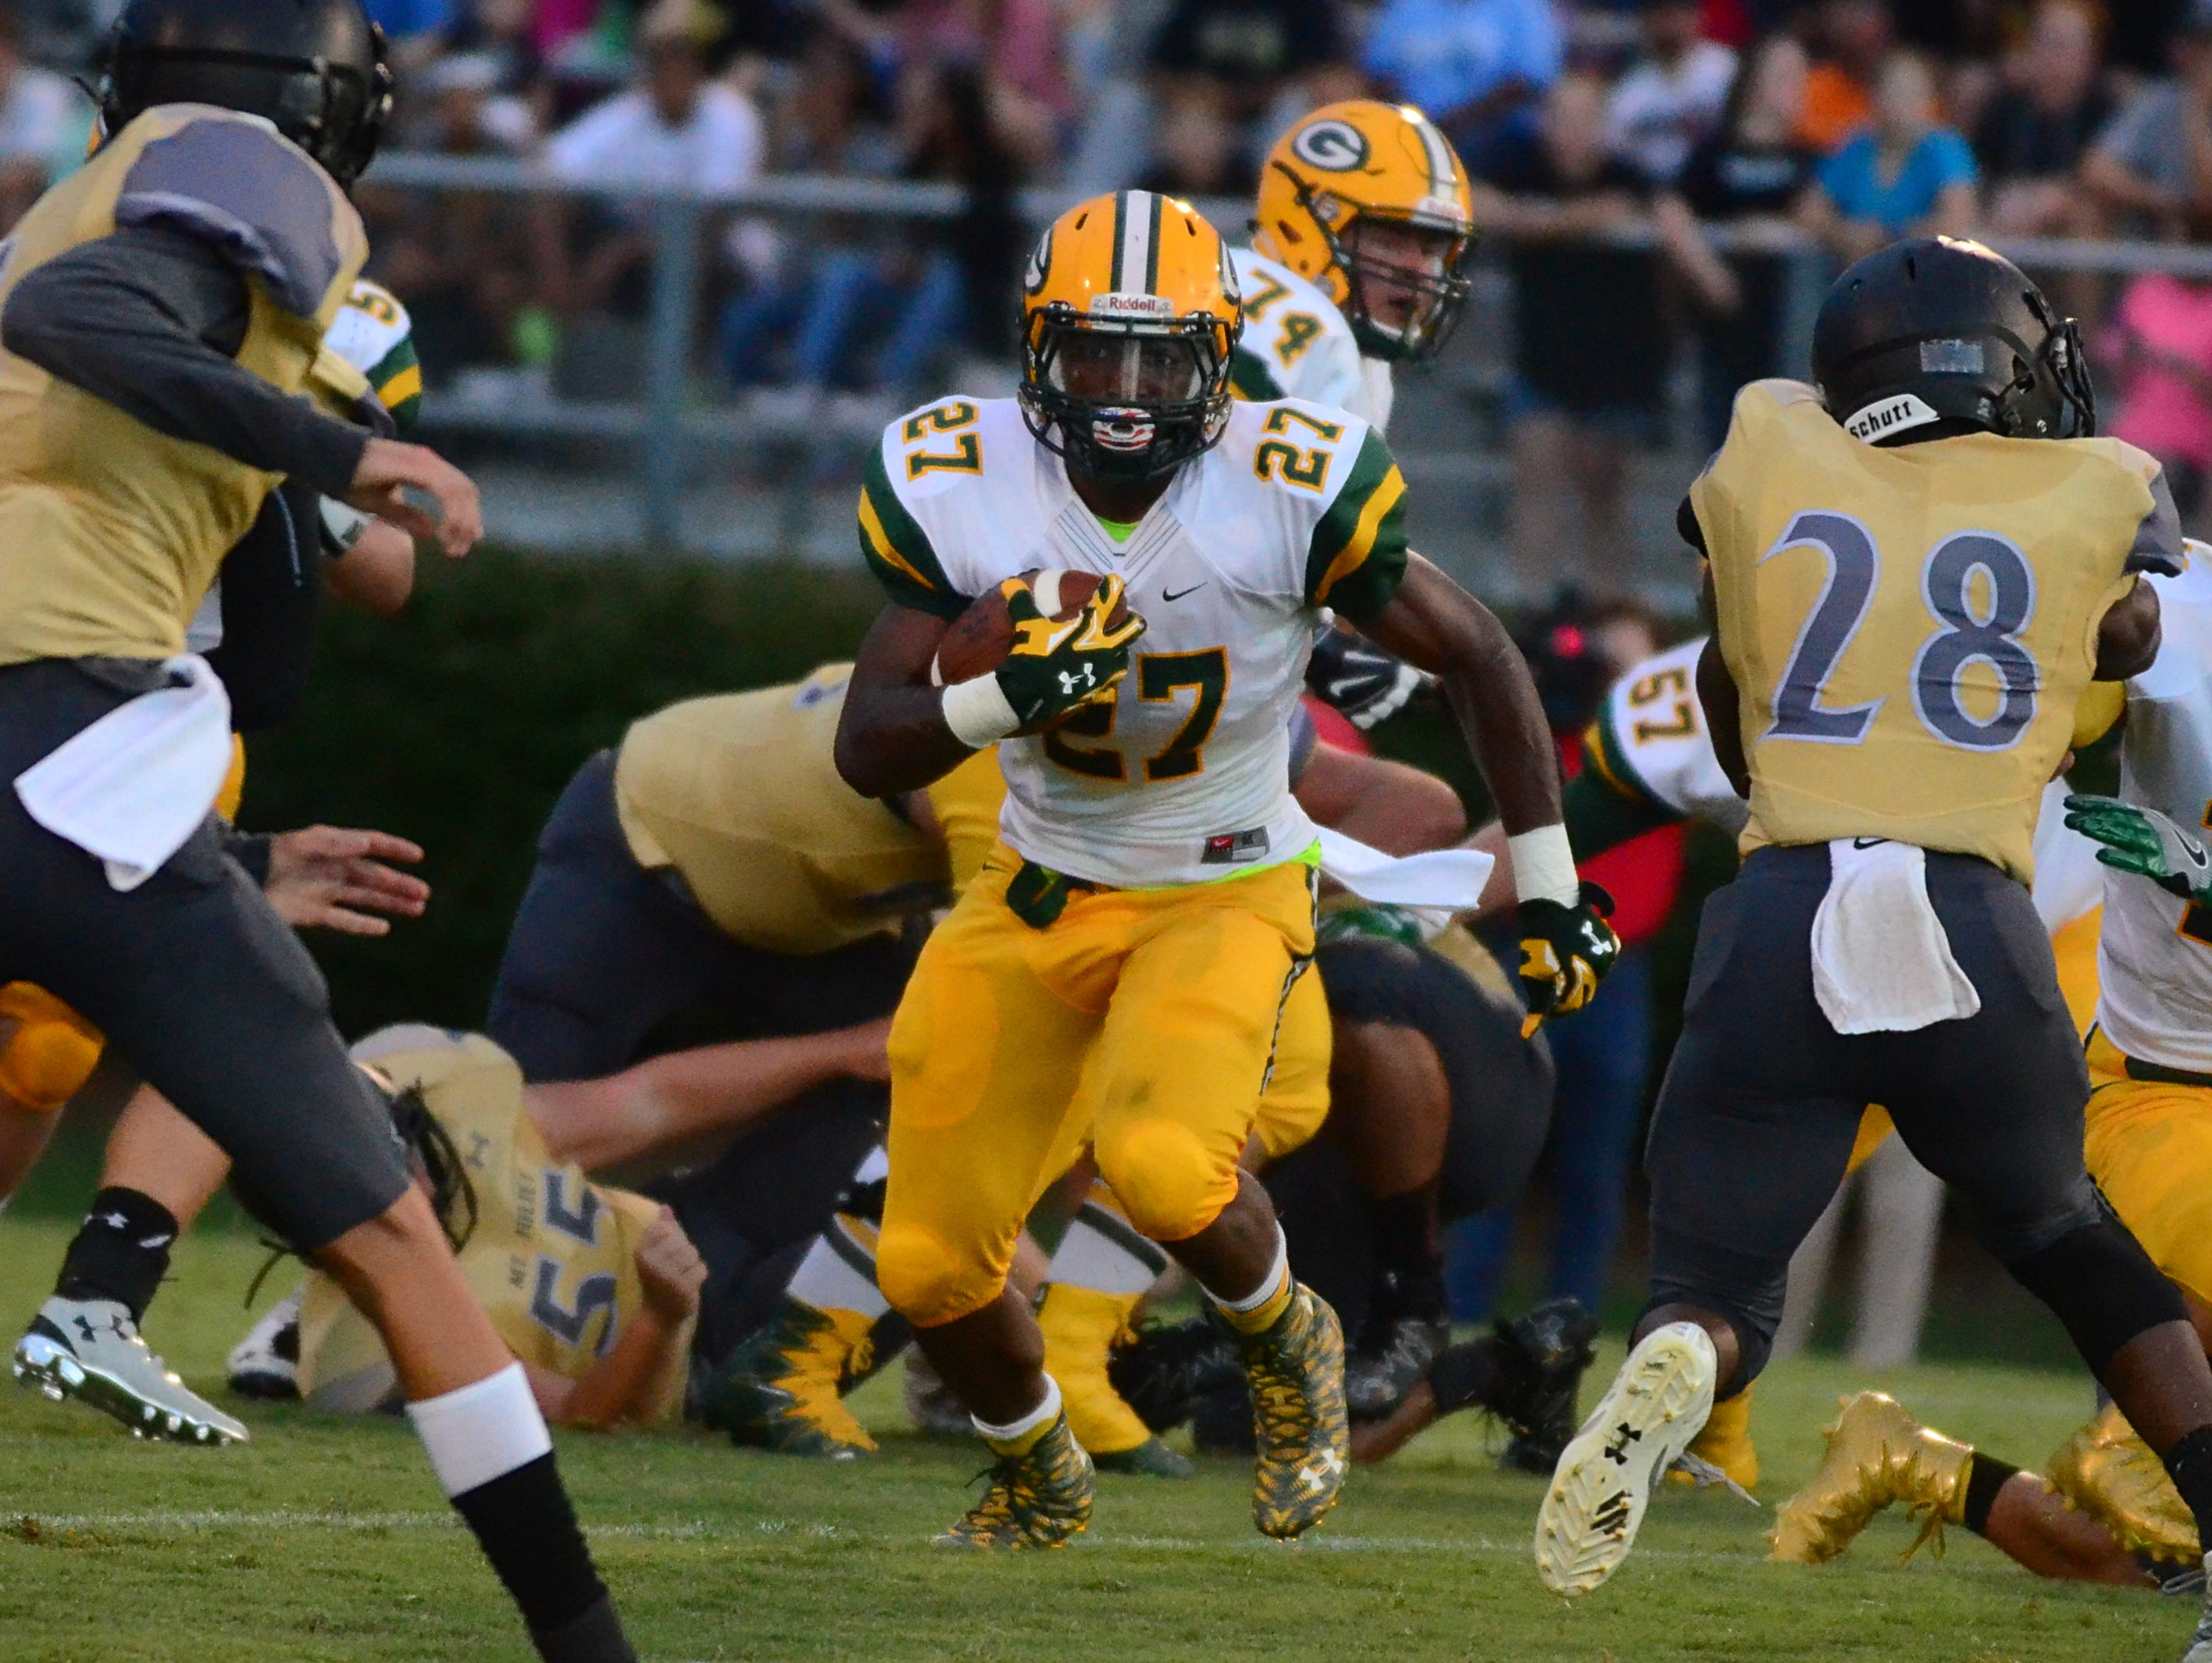 Gallatin senior running back Jordan Mason has 21 rushing touchdowns in eight games, leading the Green Wave to a 6-2 record.